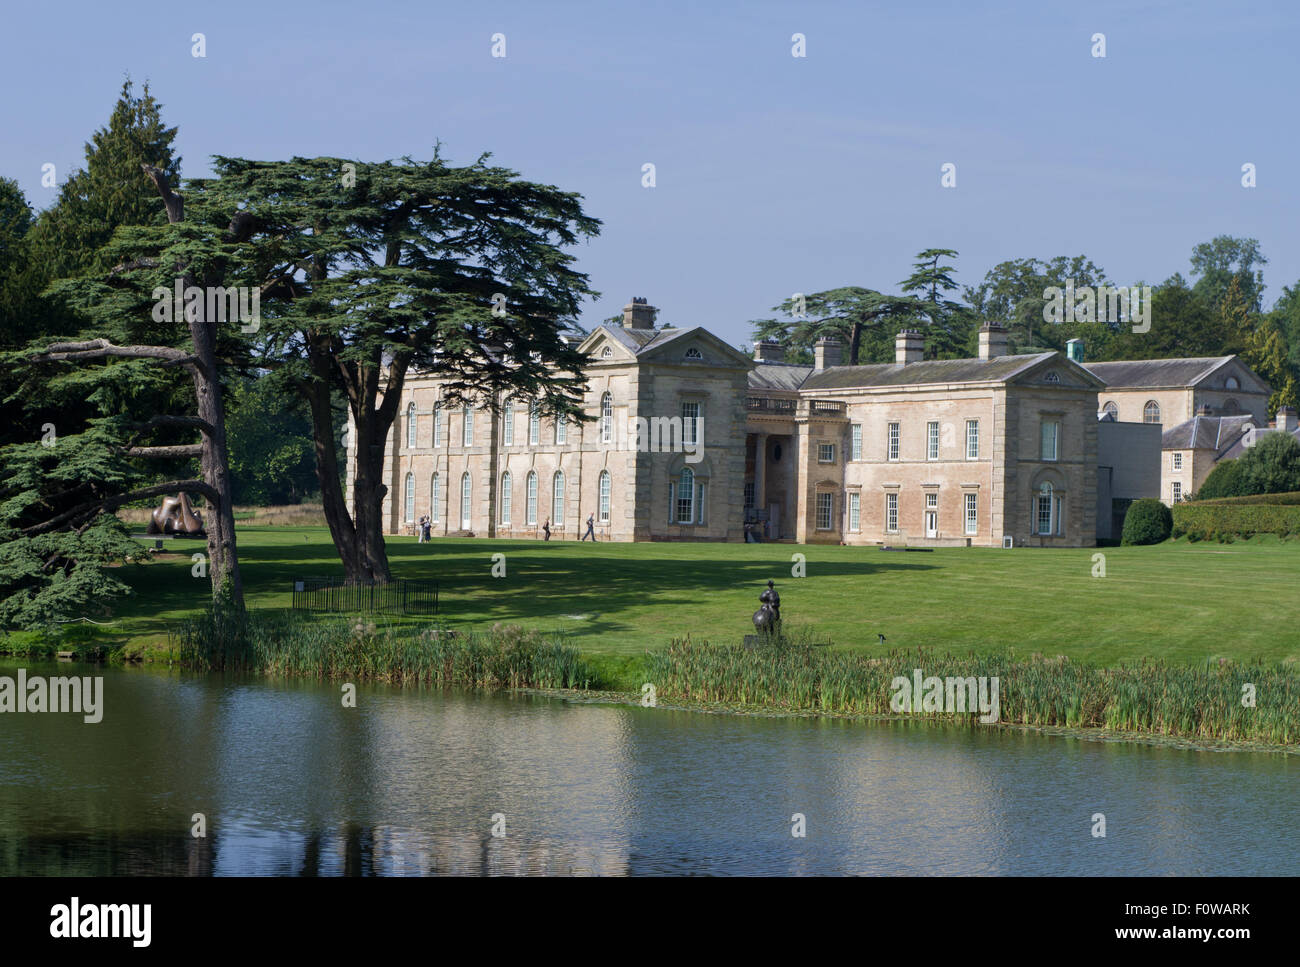 Compton Verney House in Warwickshire seen from across the lake; it now houses an award winning art gallery. - Stock Image